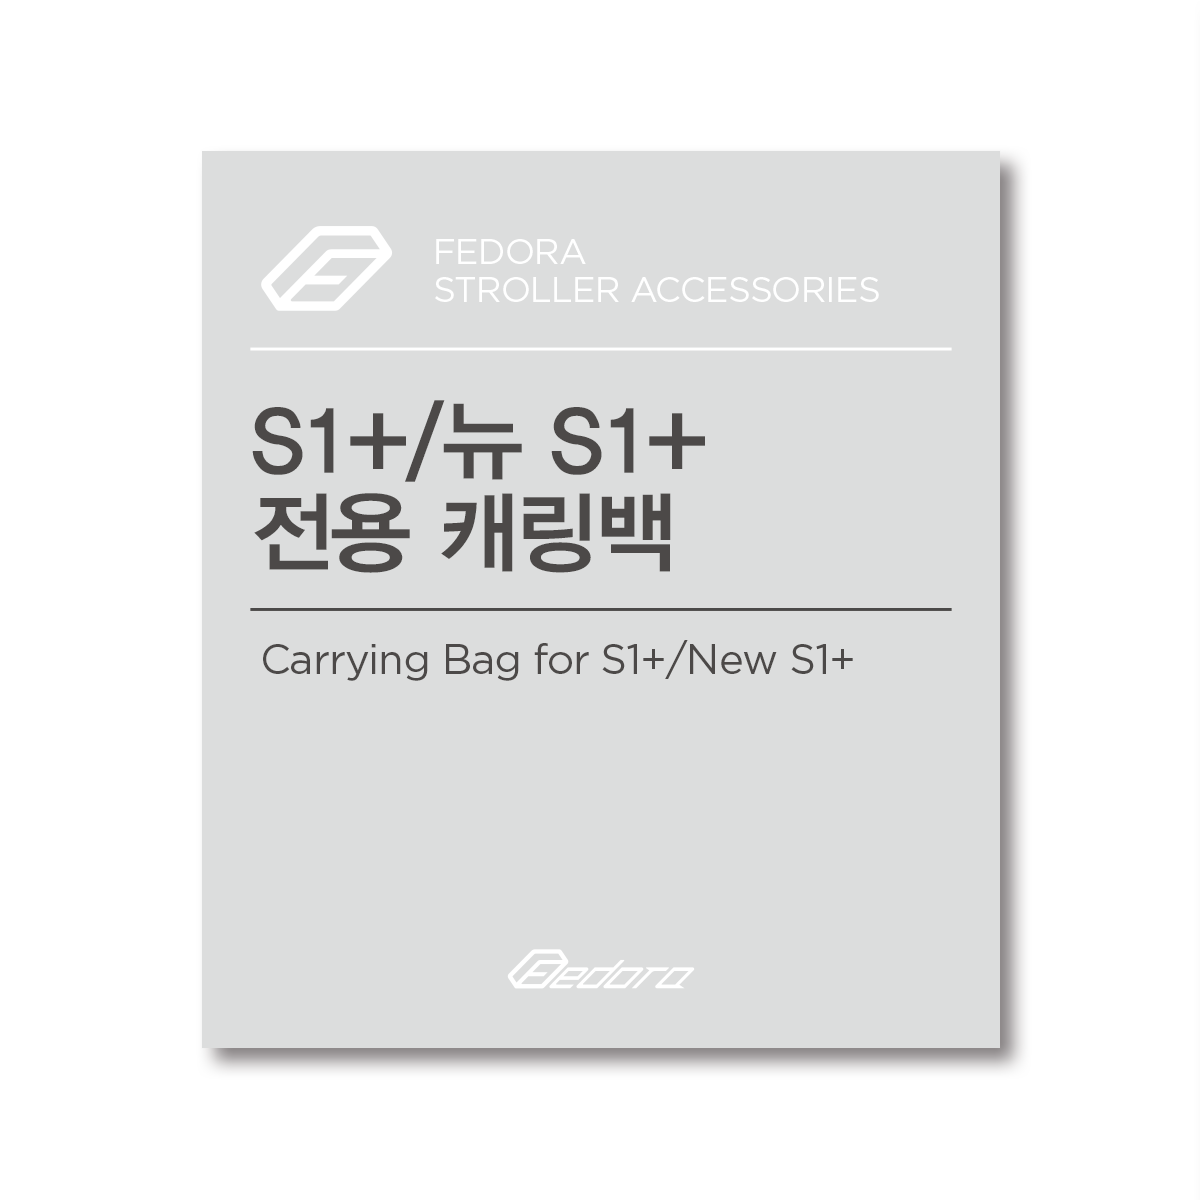 S1+/New S1+ 전용 캐링백